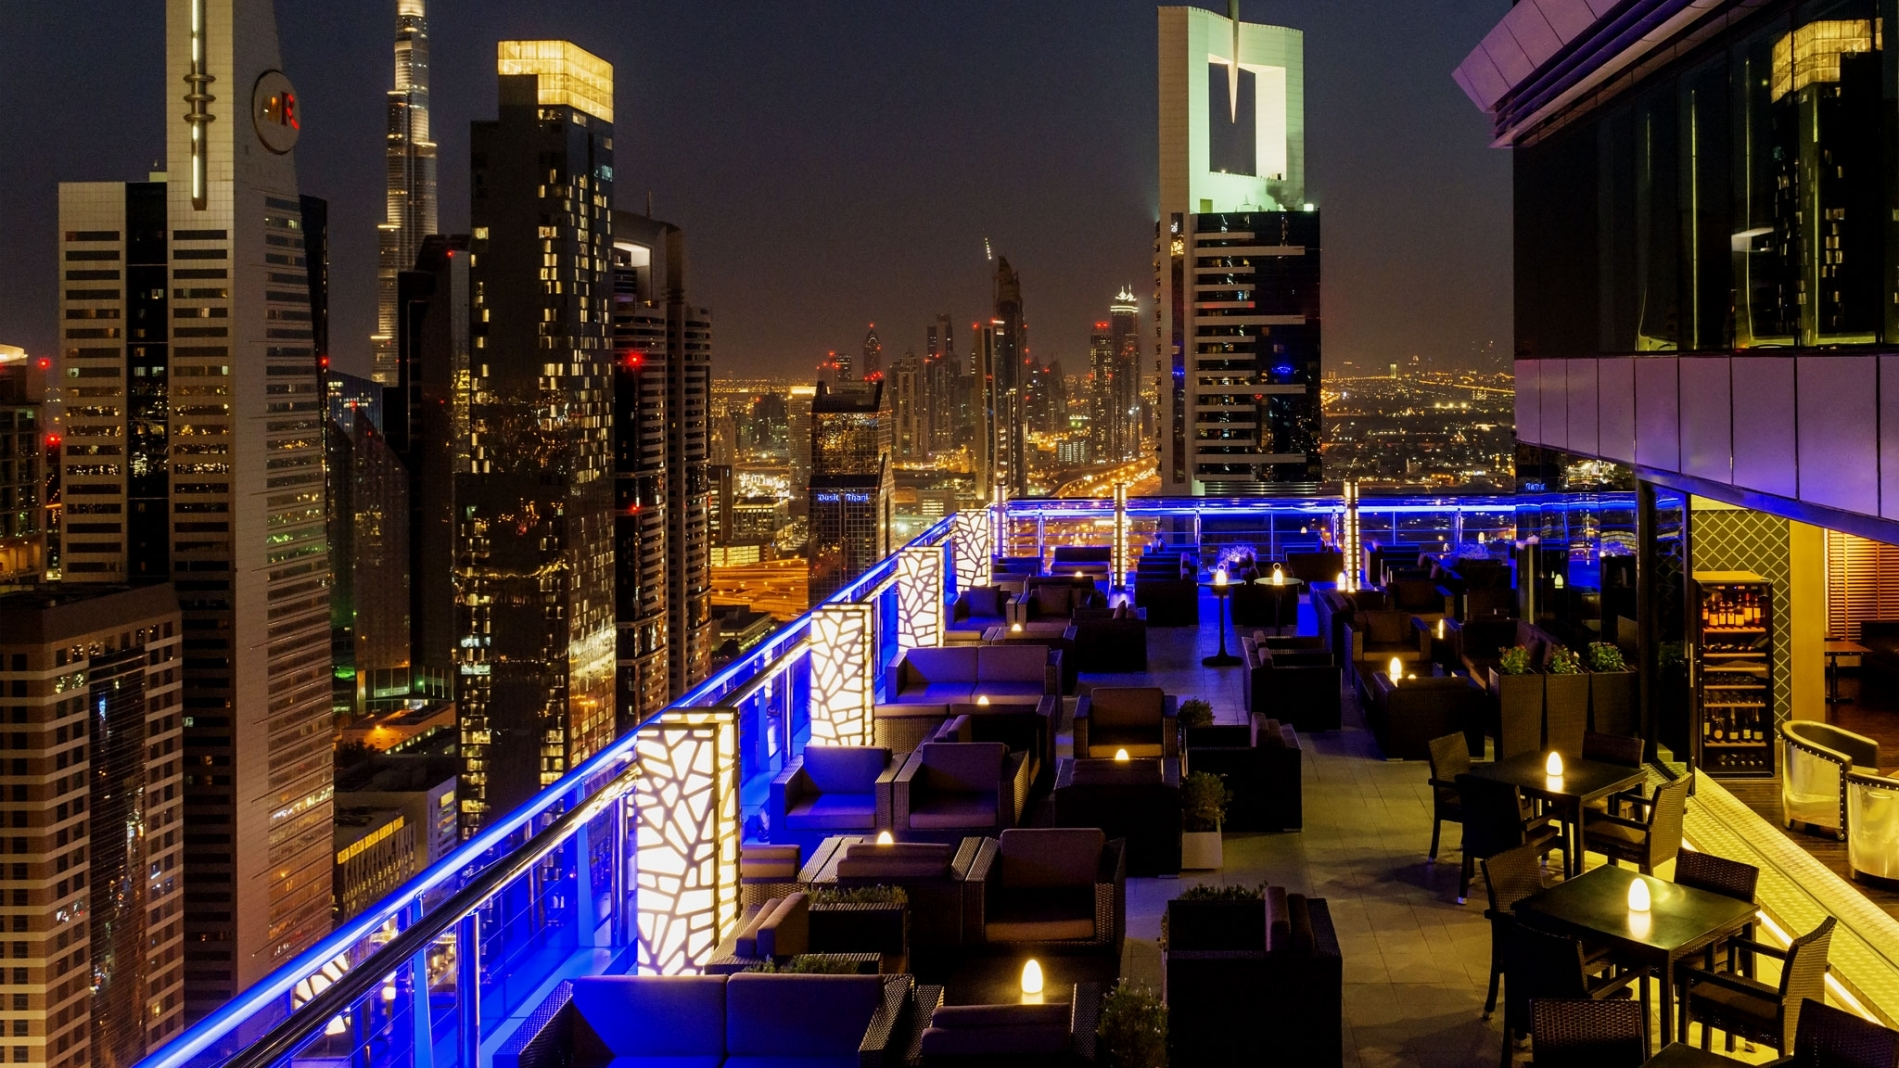 Level 43 Rooftop Bar Amp Lounge Expat Nights In Uae